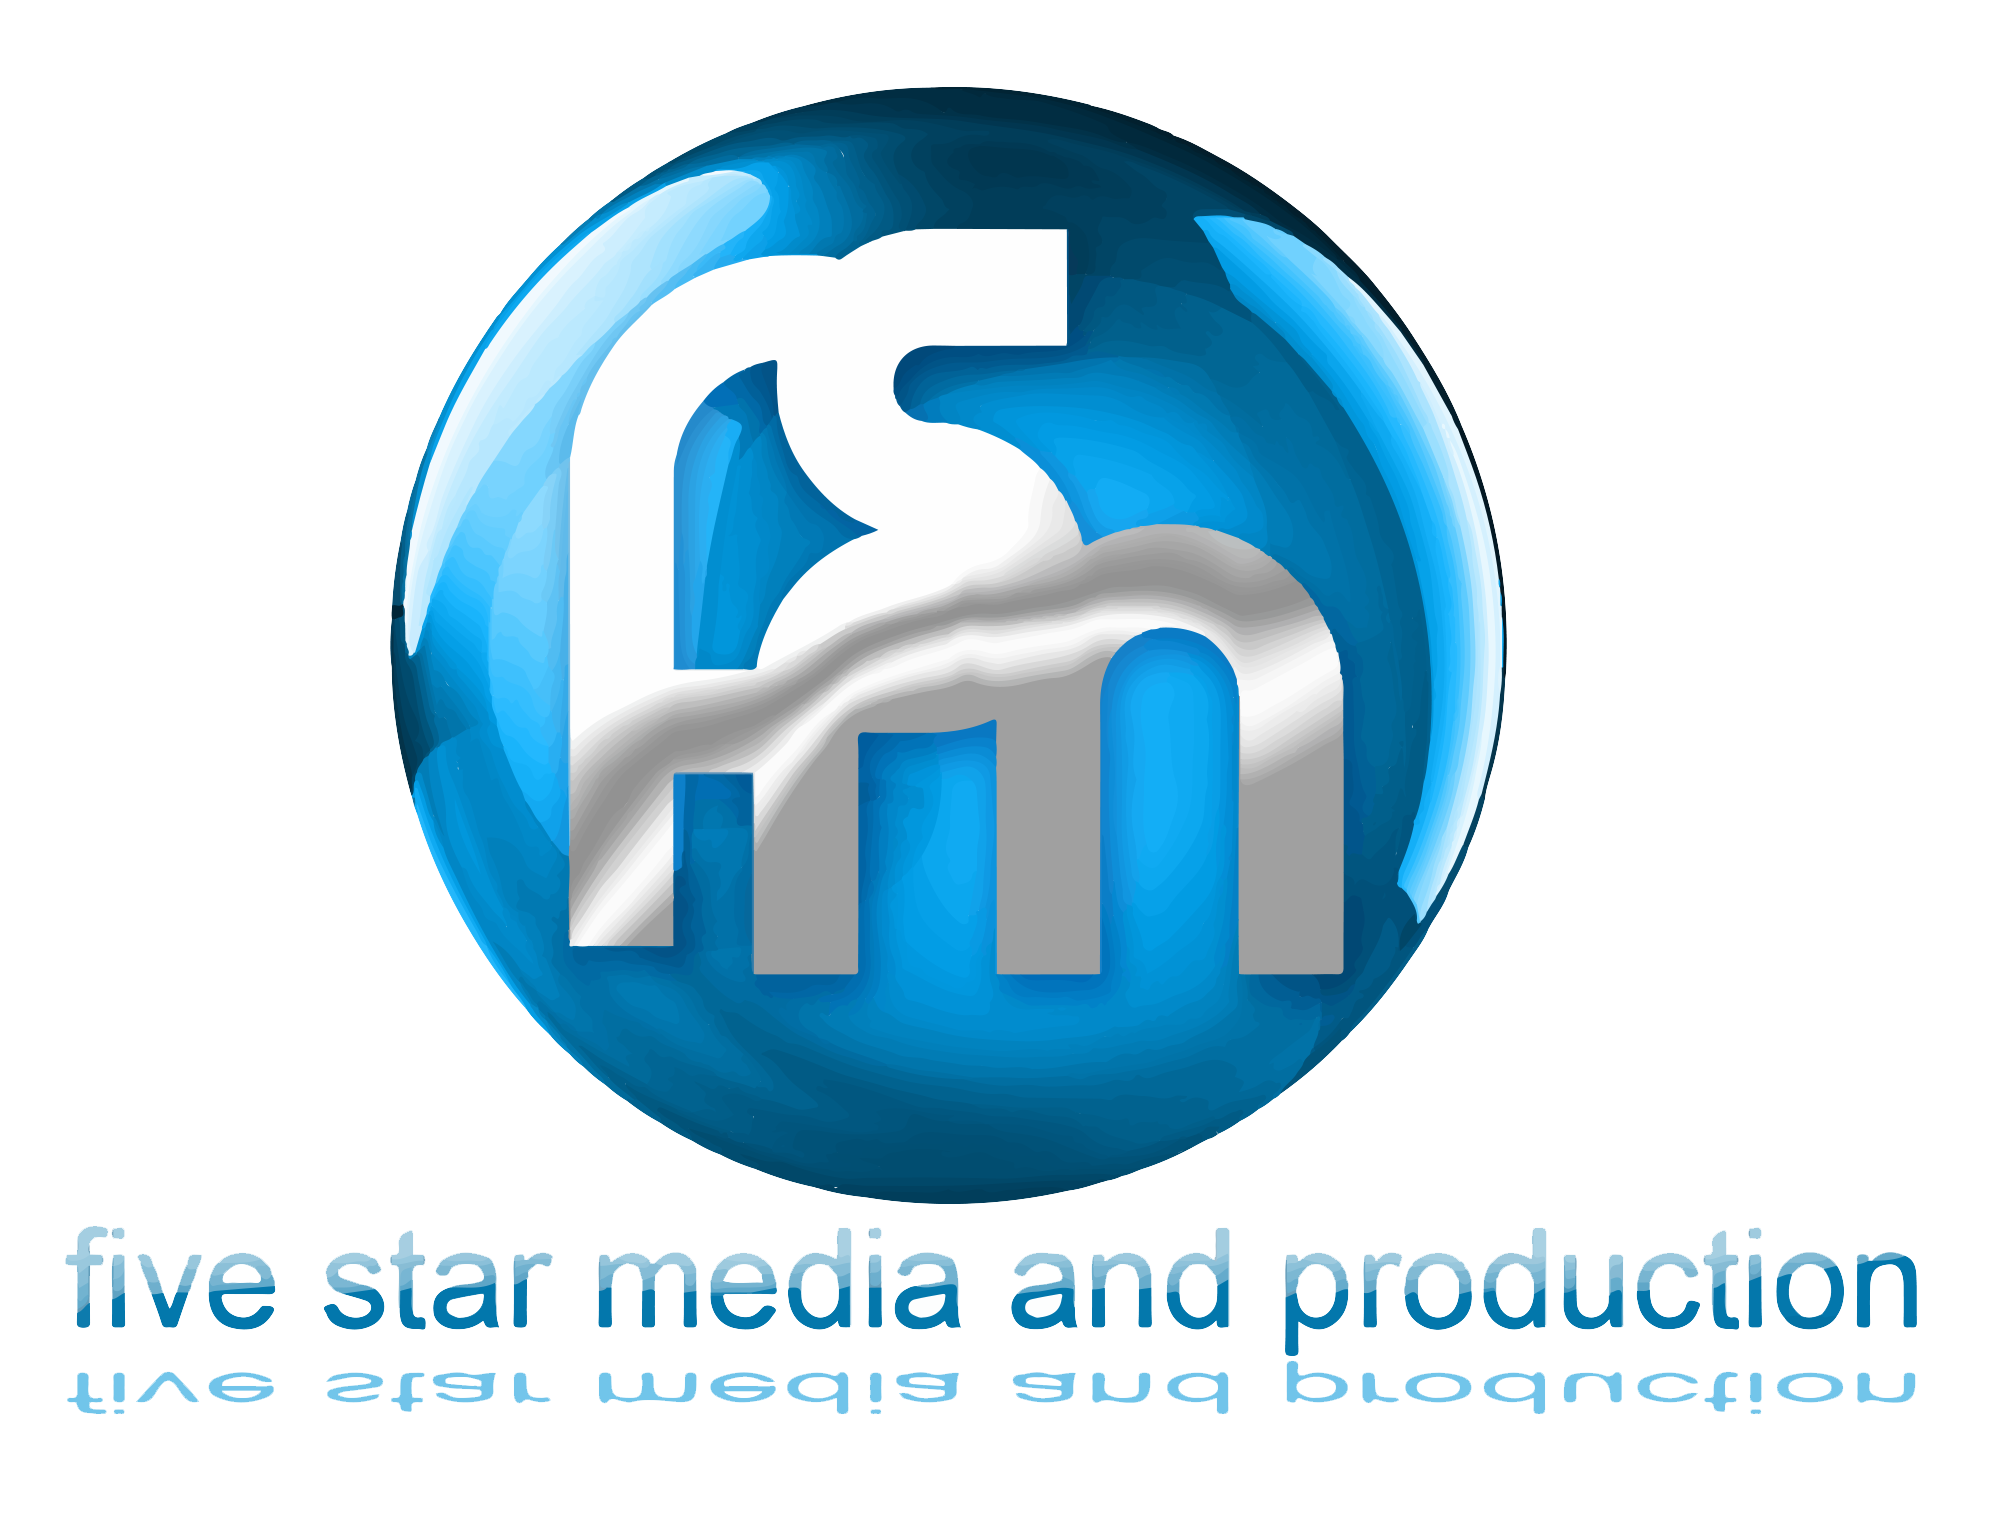 5STAR_LOGO6blue_transparent.png